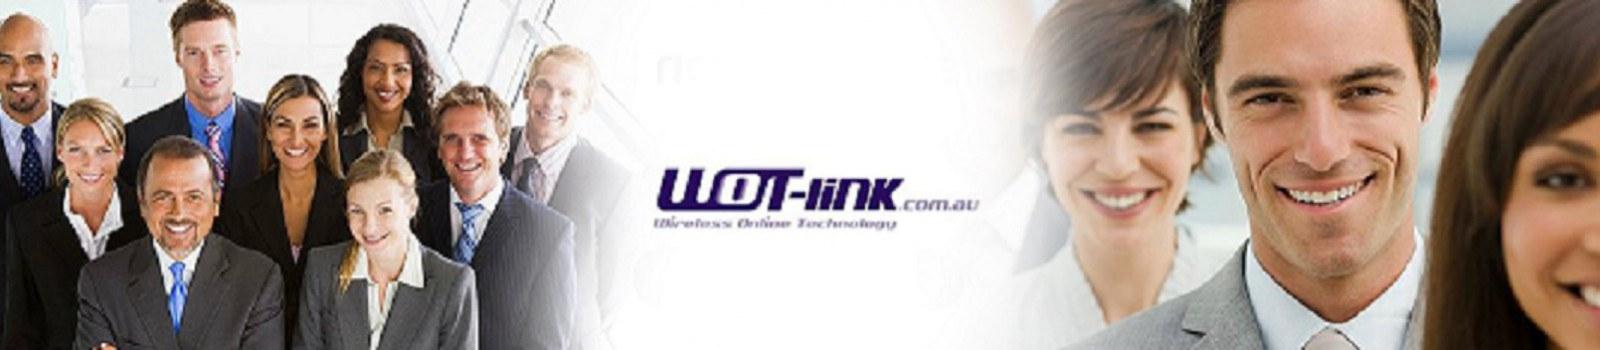 WOT Link - Logo - Business in Networking Group